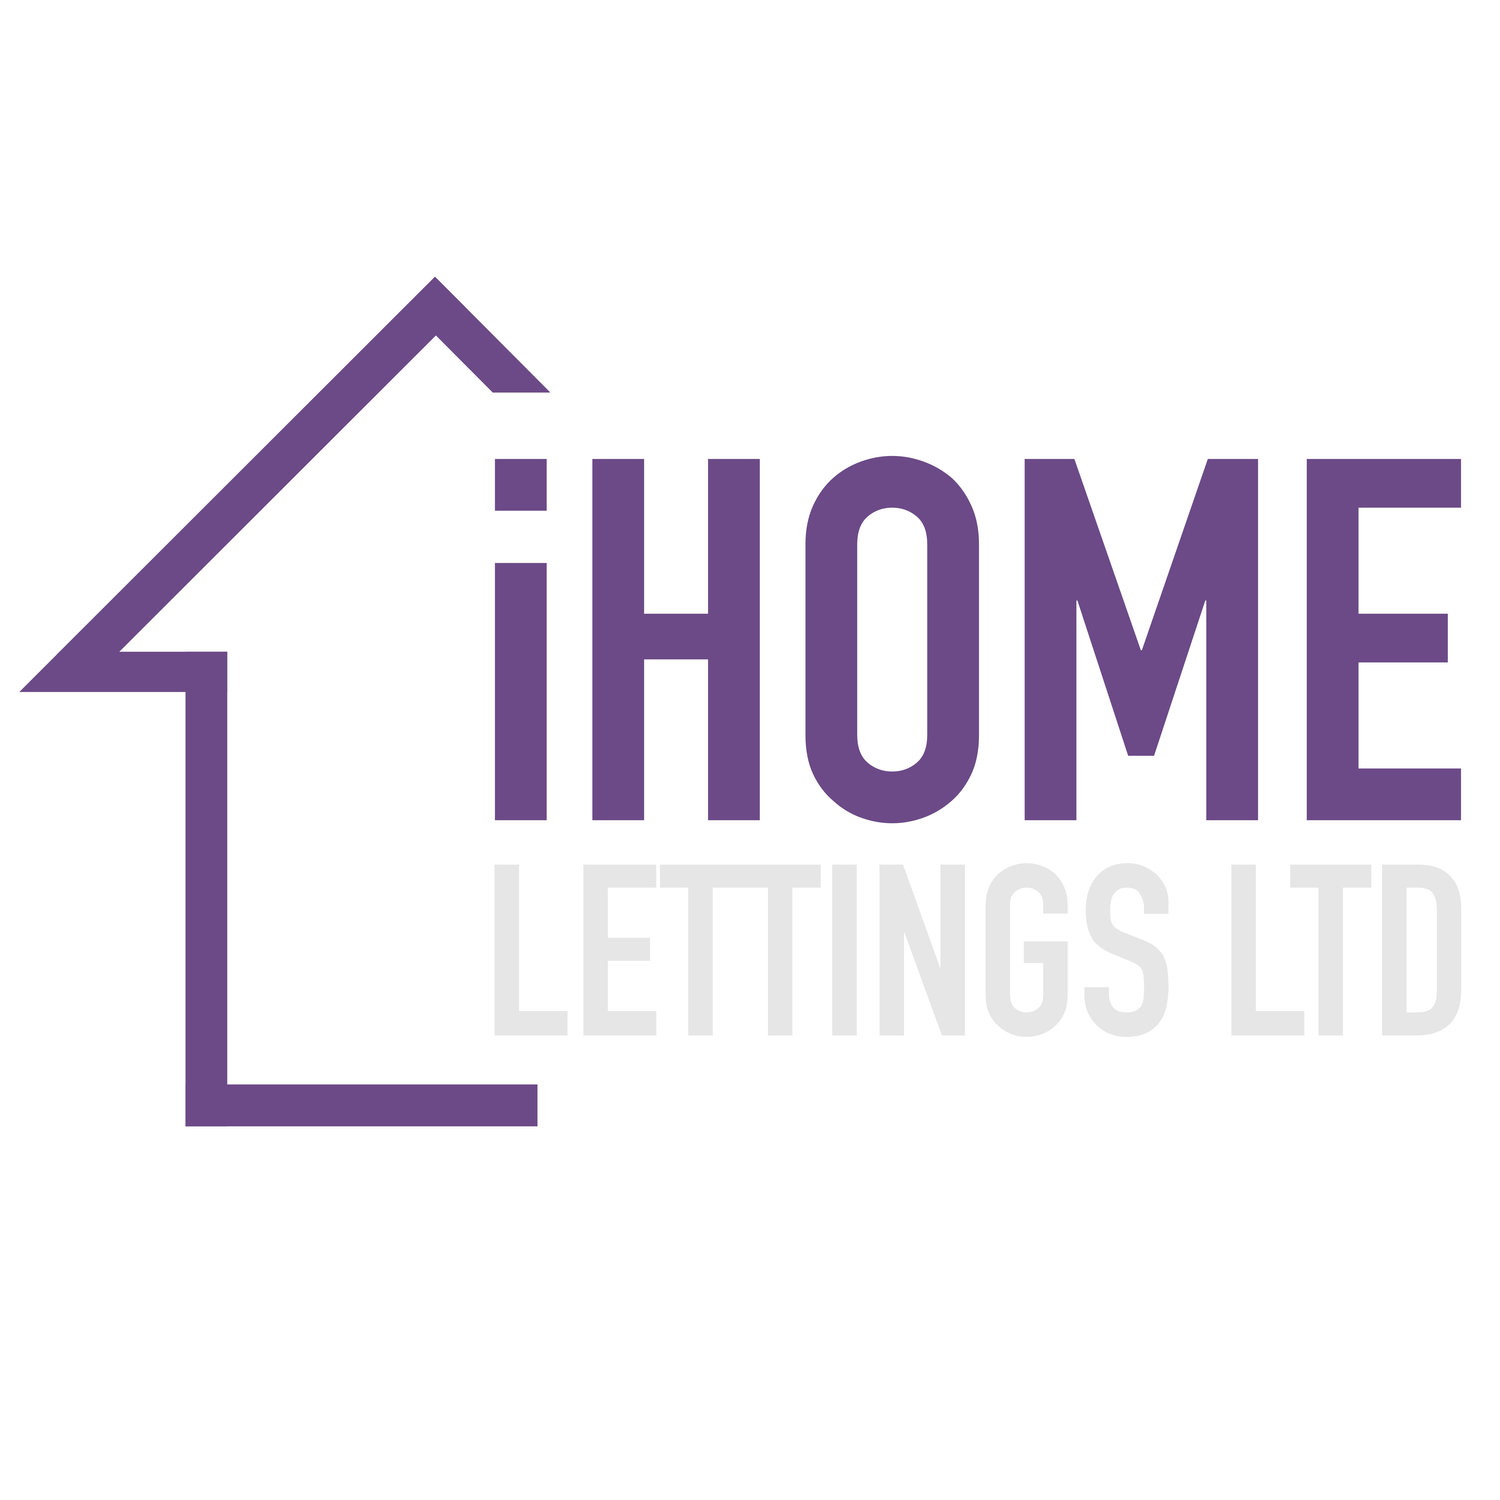 iHome Lettings Ltd